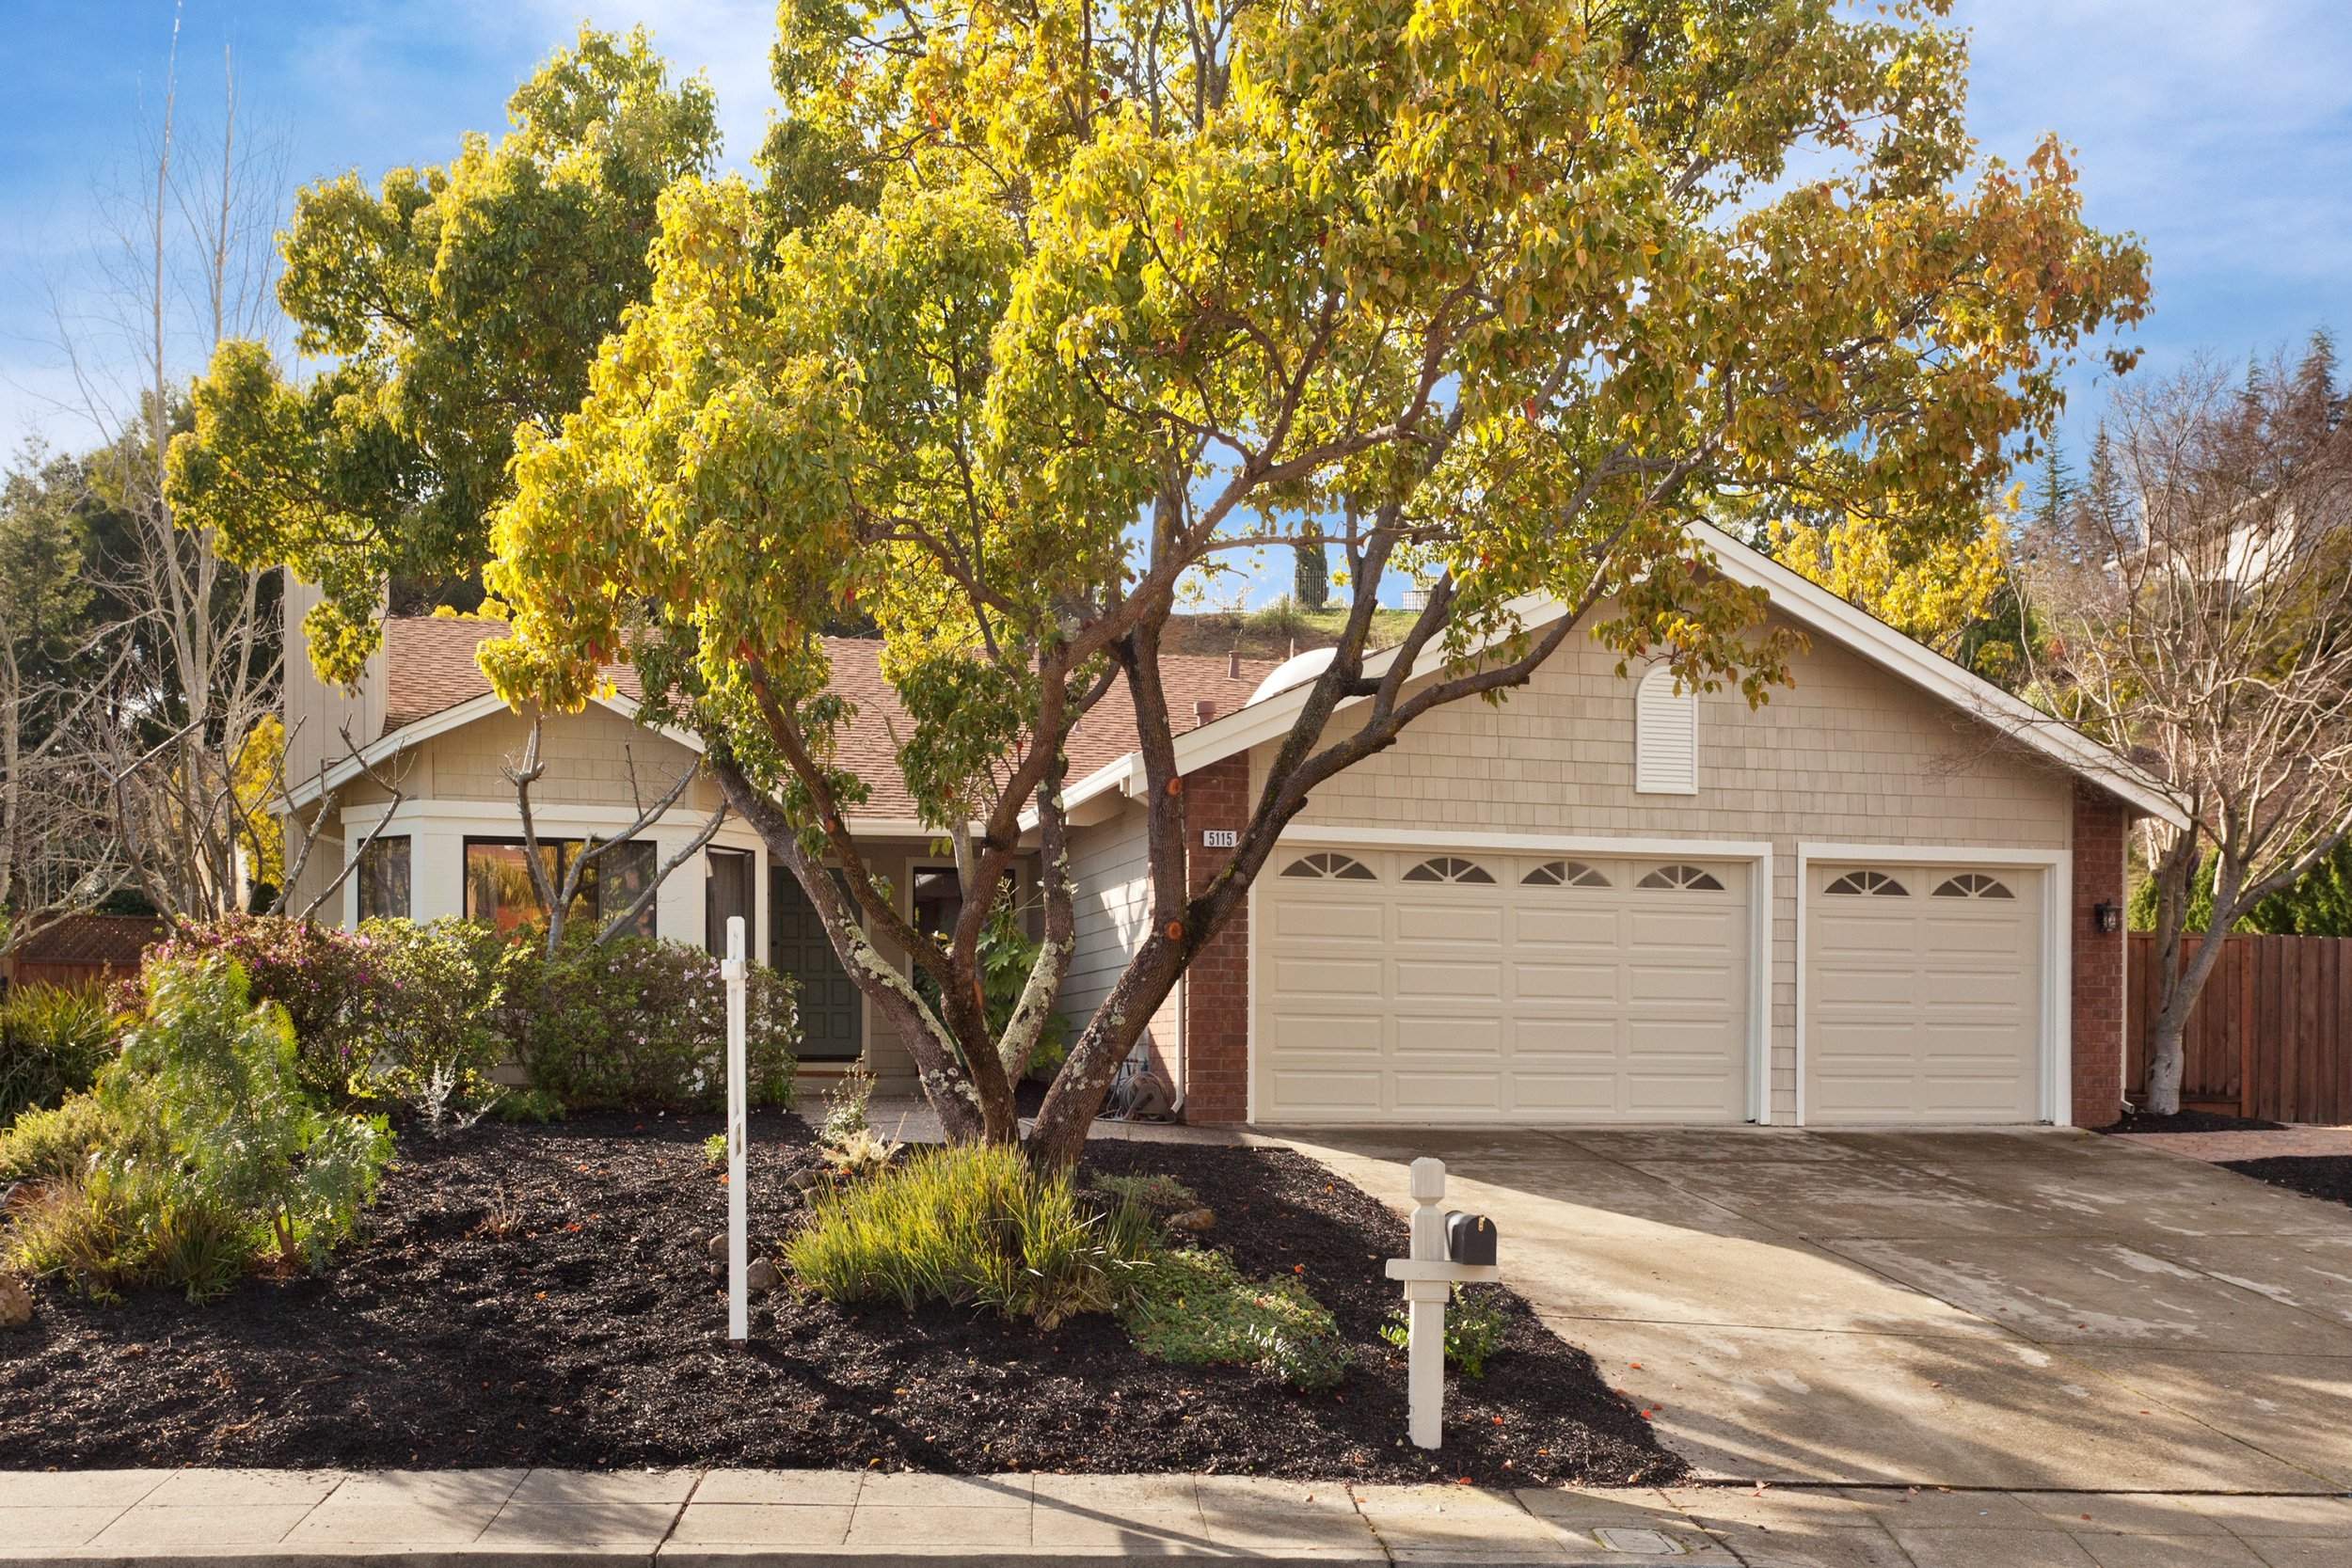 SOLD | 5155 FAIRHILL COURT, OAKLAND $1,225,000